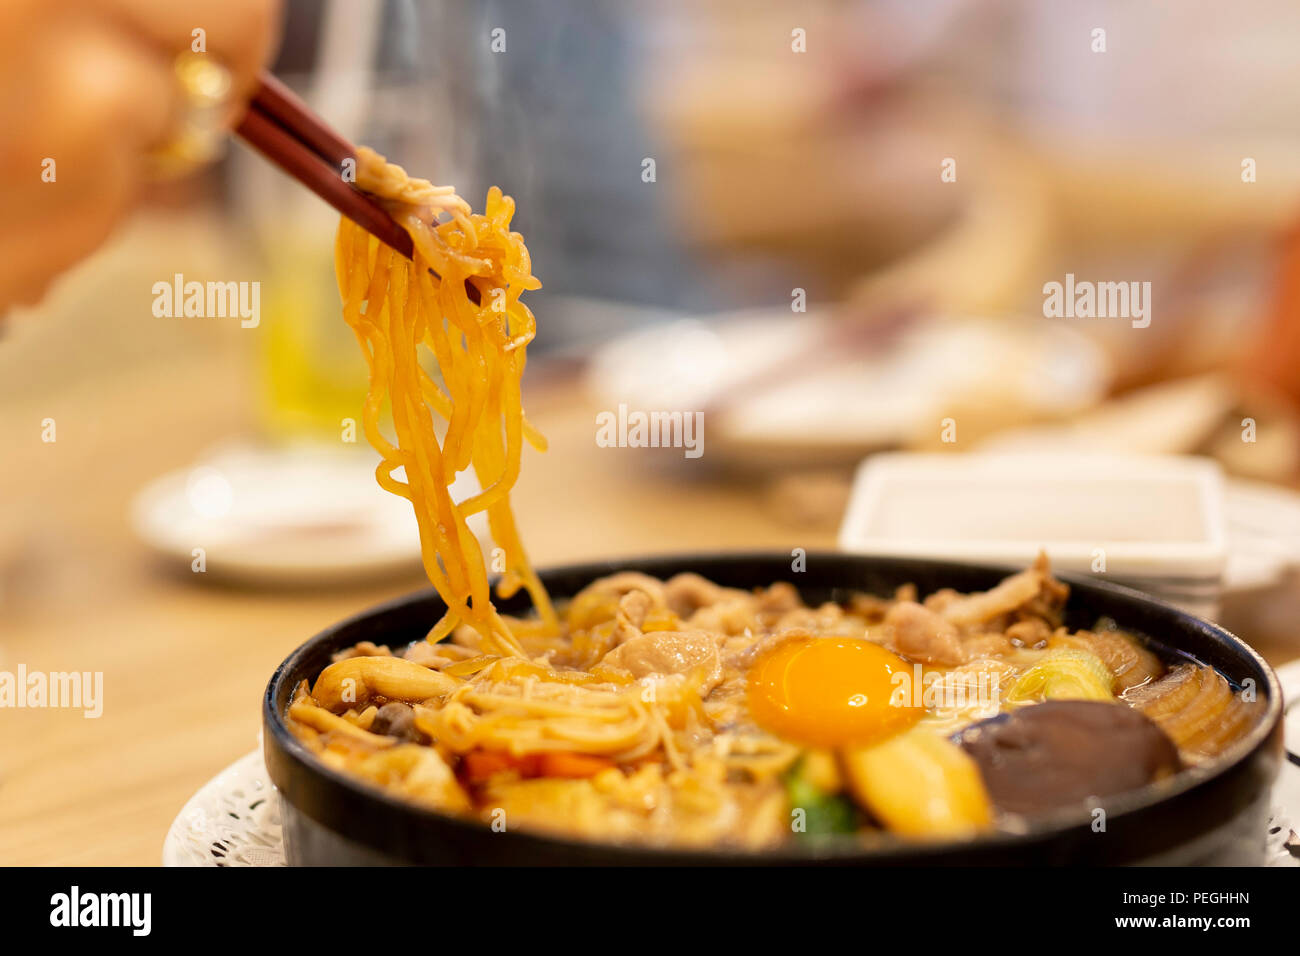 Hand with chopsticks eating Japanese udon noodles with egg. Stock Photo